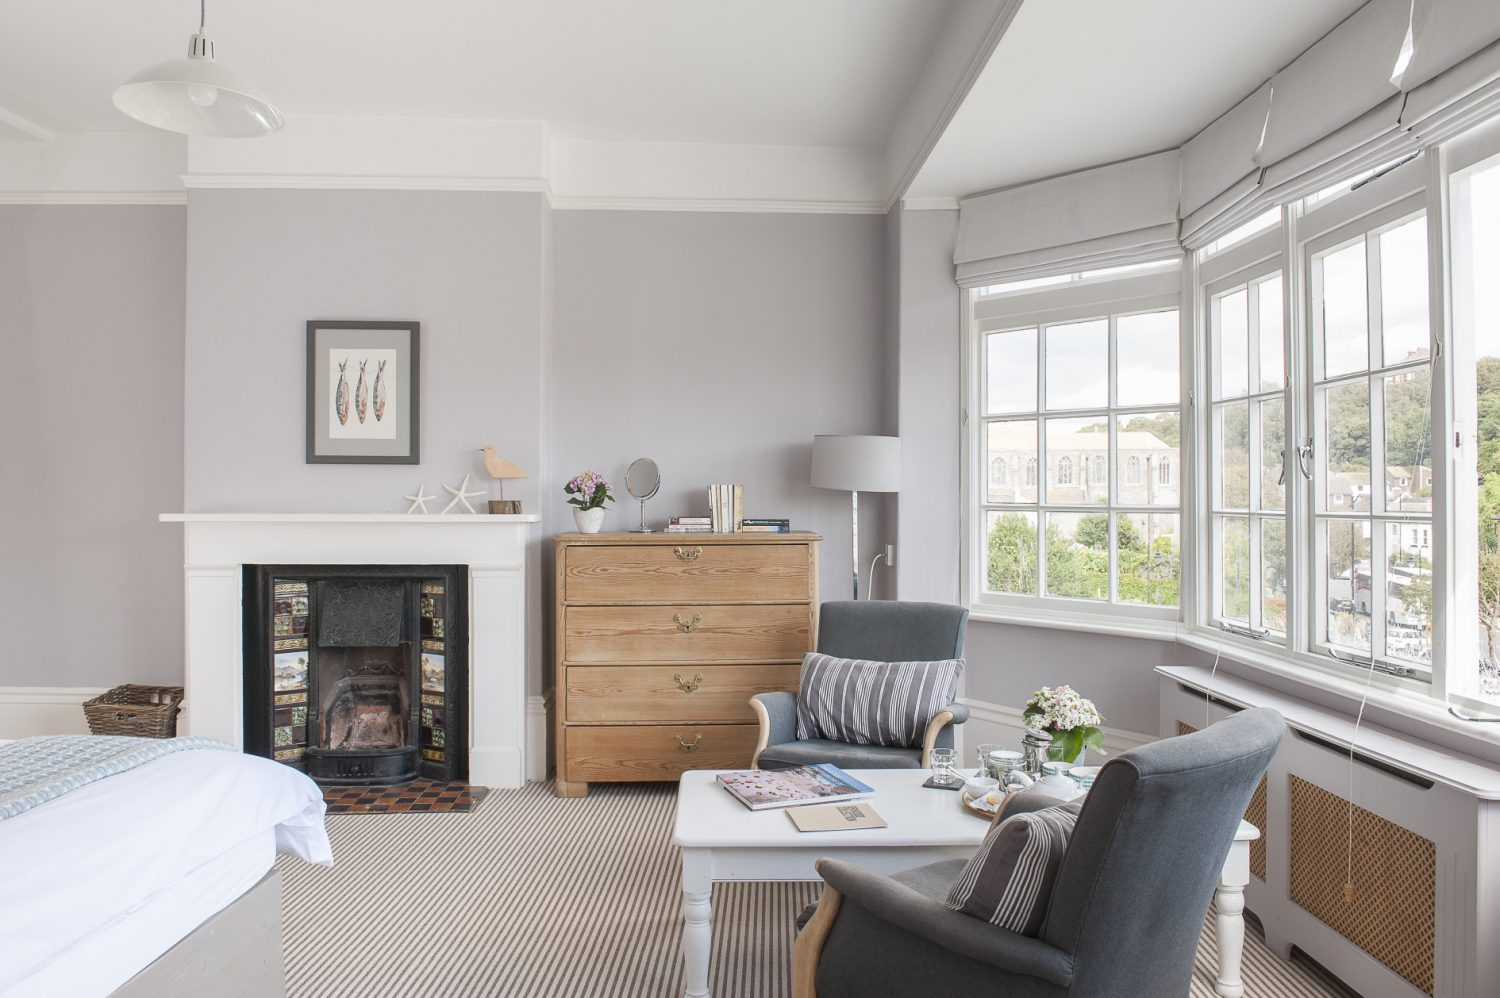 """We set out to find a balance between the property being warm and welcoming but, at the same time, bright and uncluttered,"" says Sara. And that is exactly the result they have achieved."